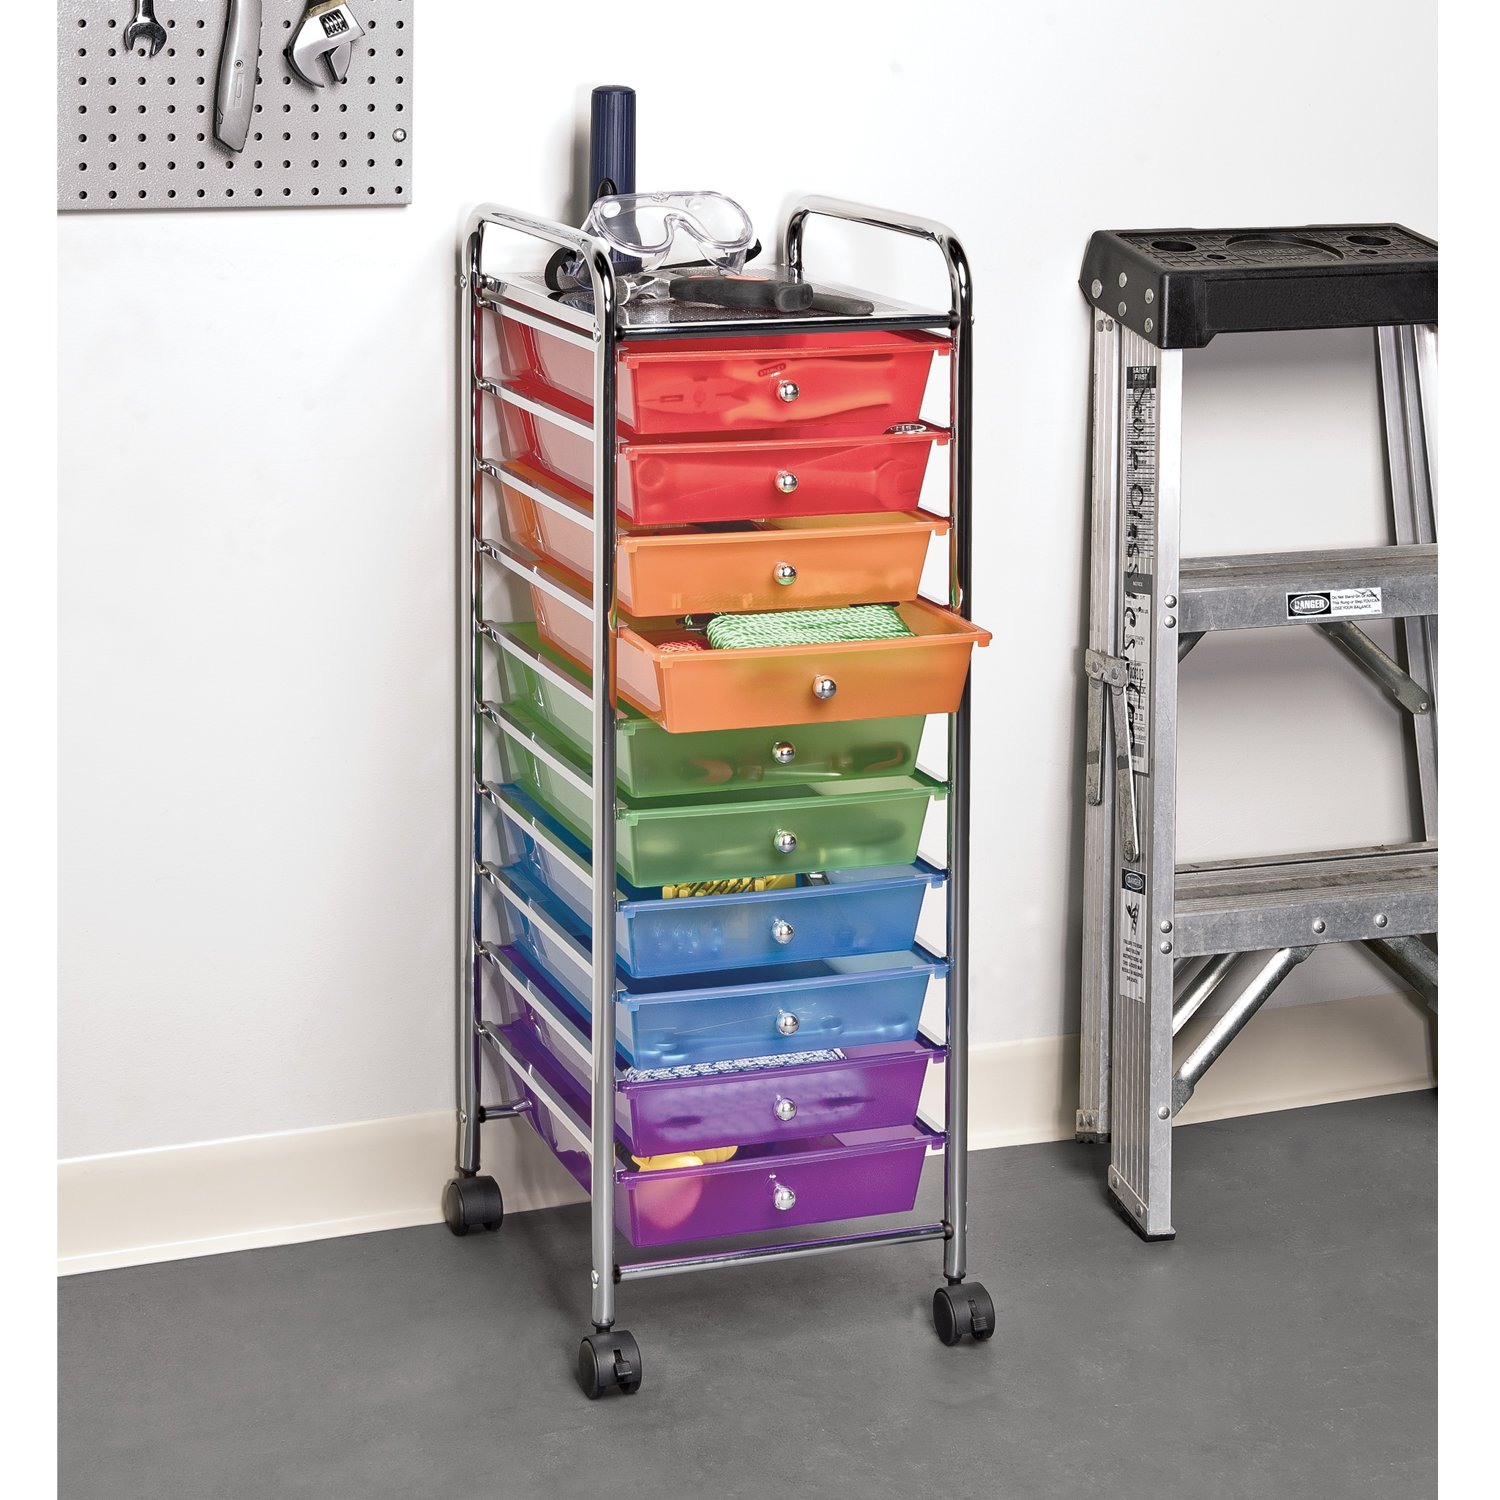 Amazon.com: Seville Classics 10-Drawer Organizer Cart, Multi Color: Home &  Kitchen